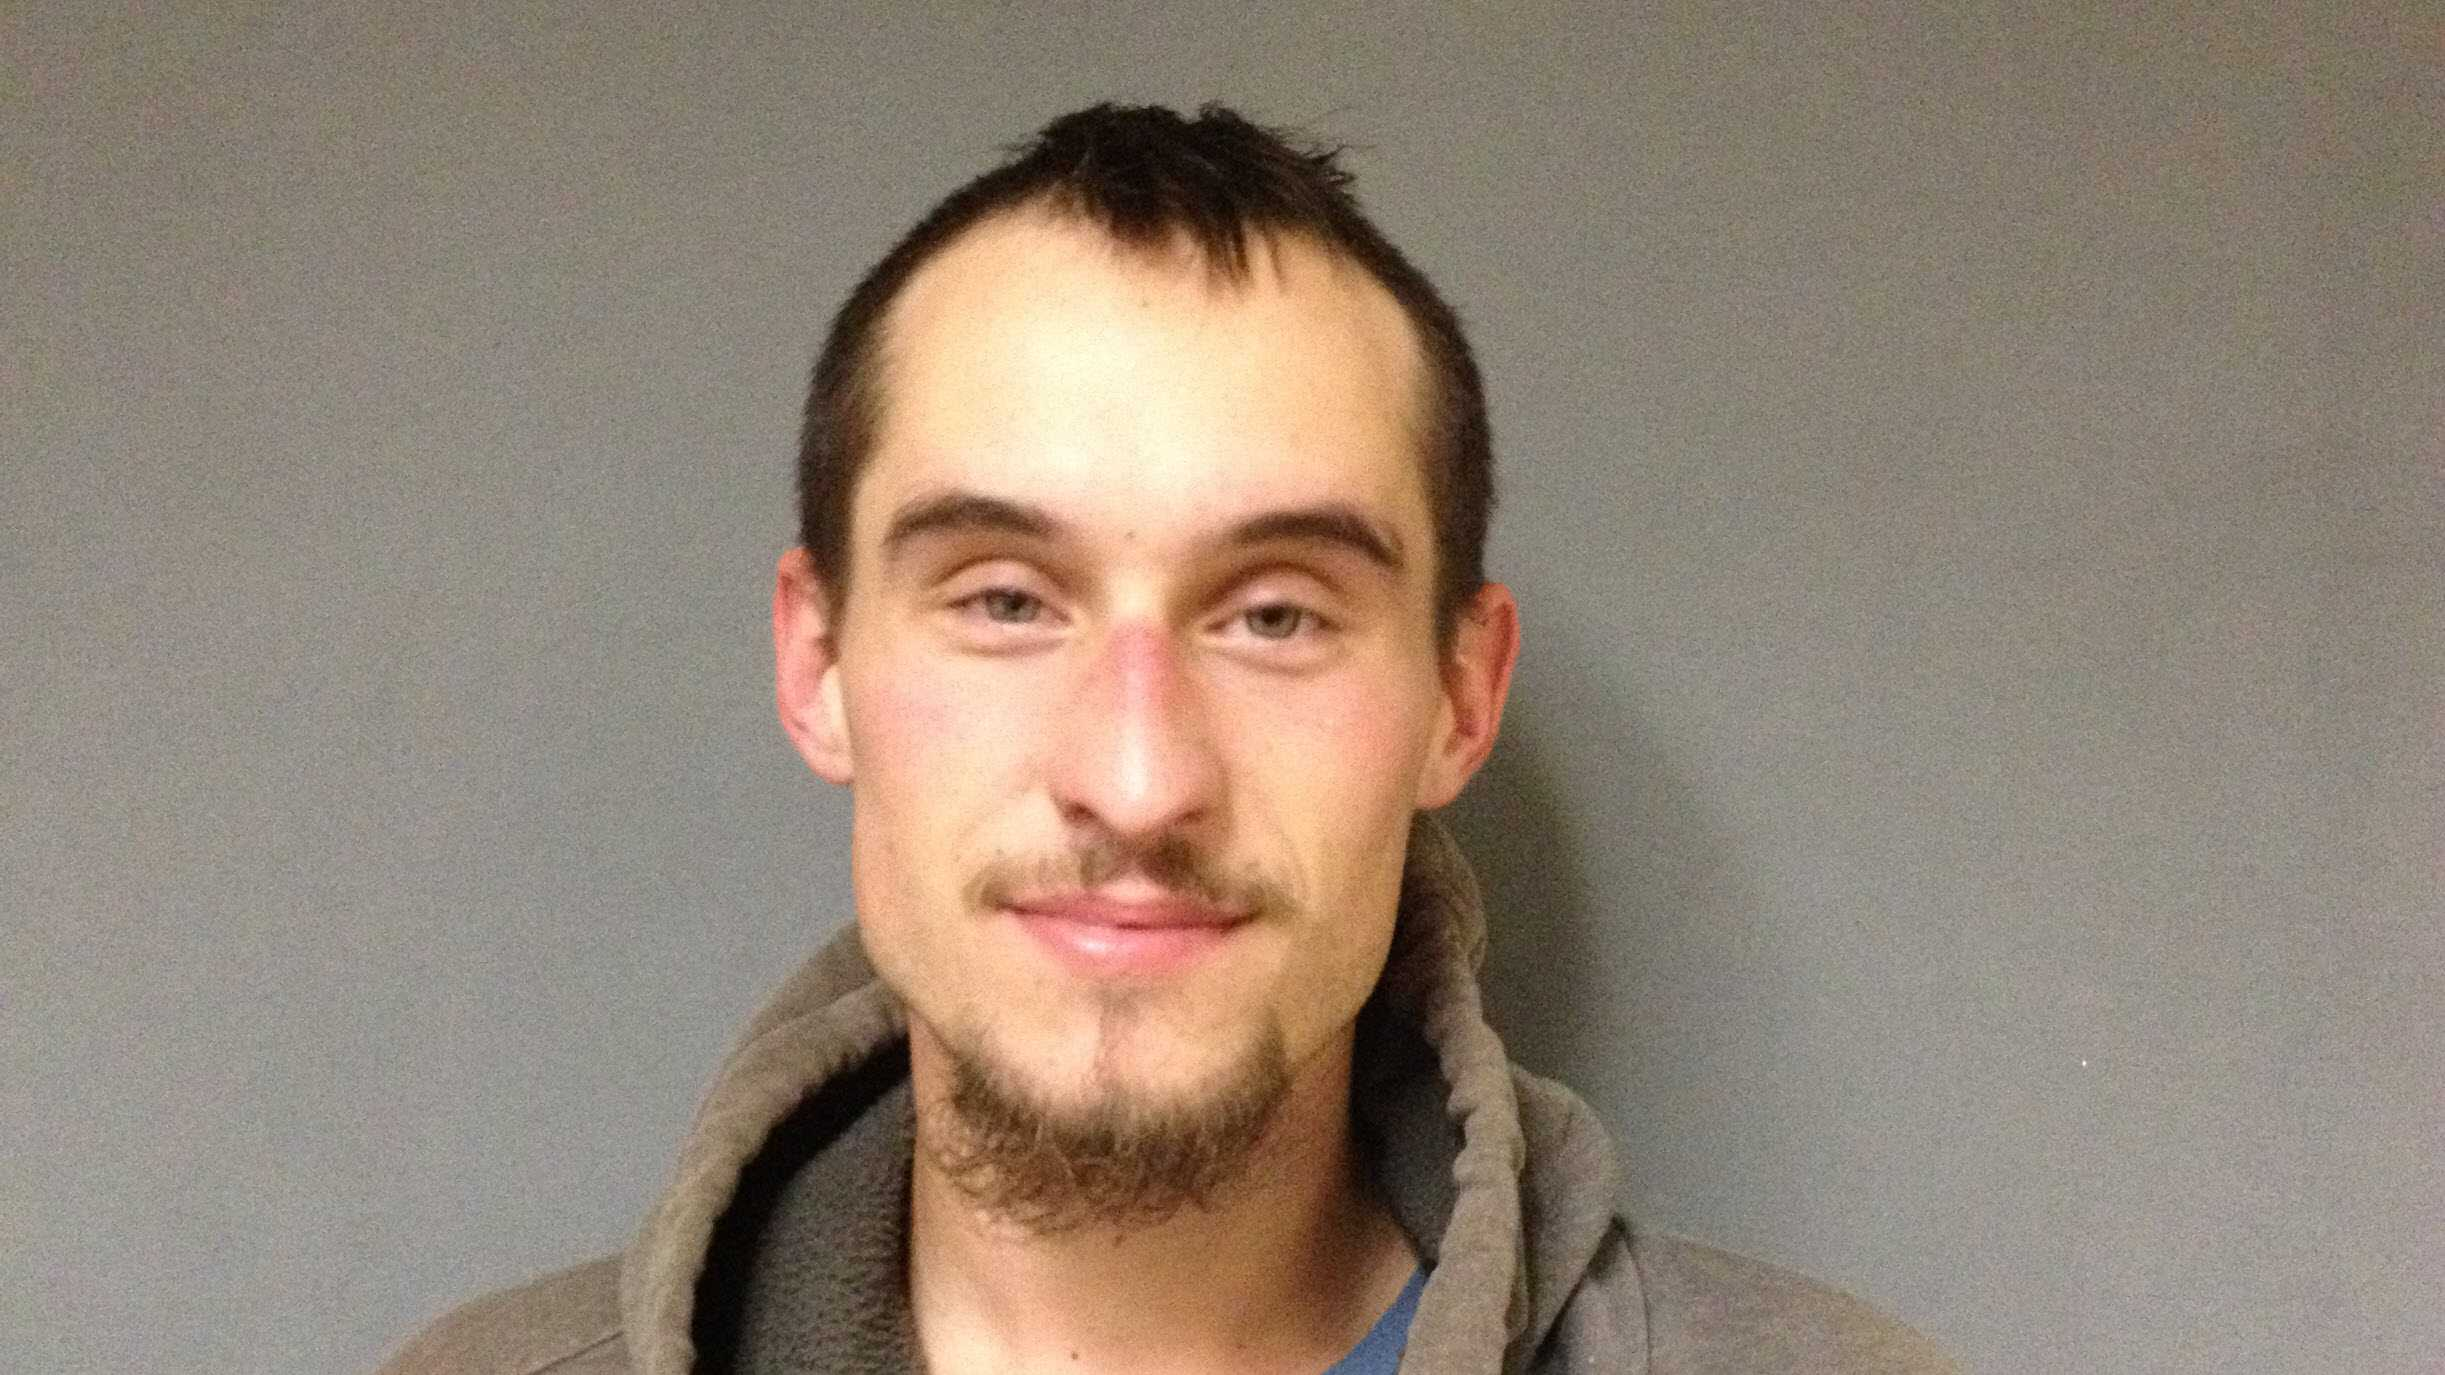 Shane A. Redman, Sr., 25, of Swanton, Vt. was arrested and charged with armed robbery. St. Albans Police say Redman robbed the Route 78 Champlain Farms early Monday morning.